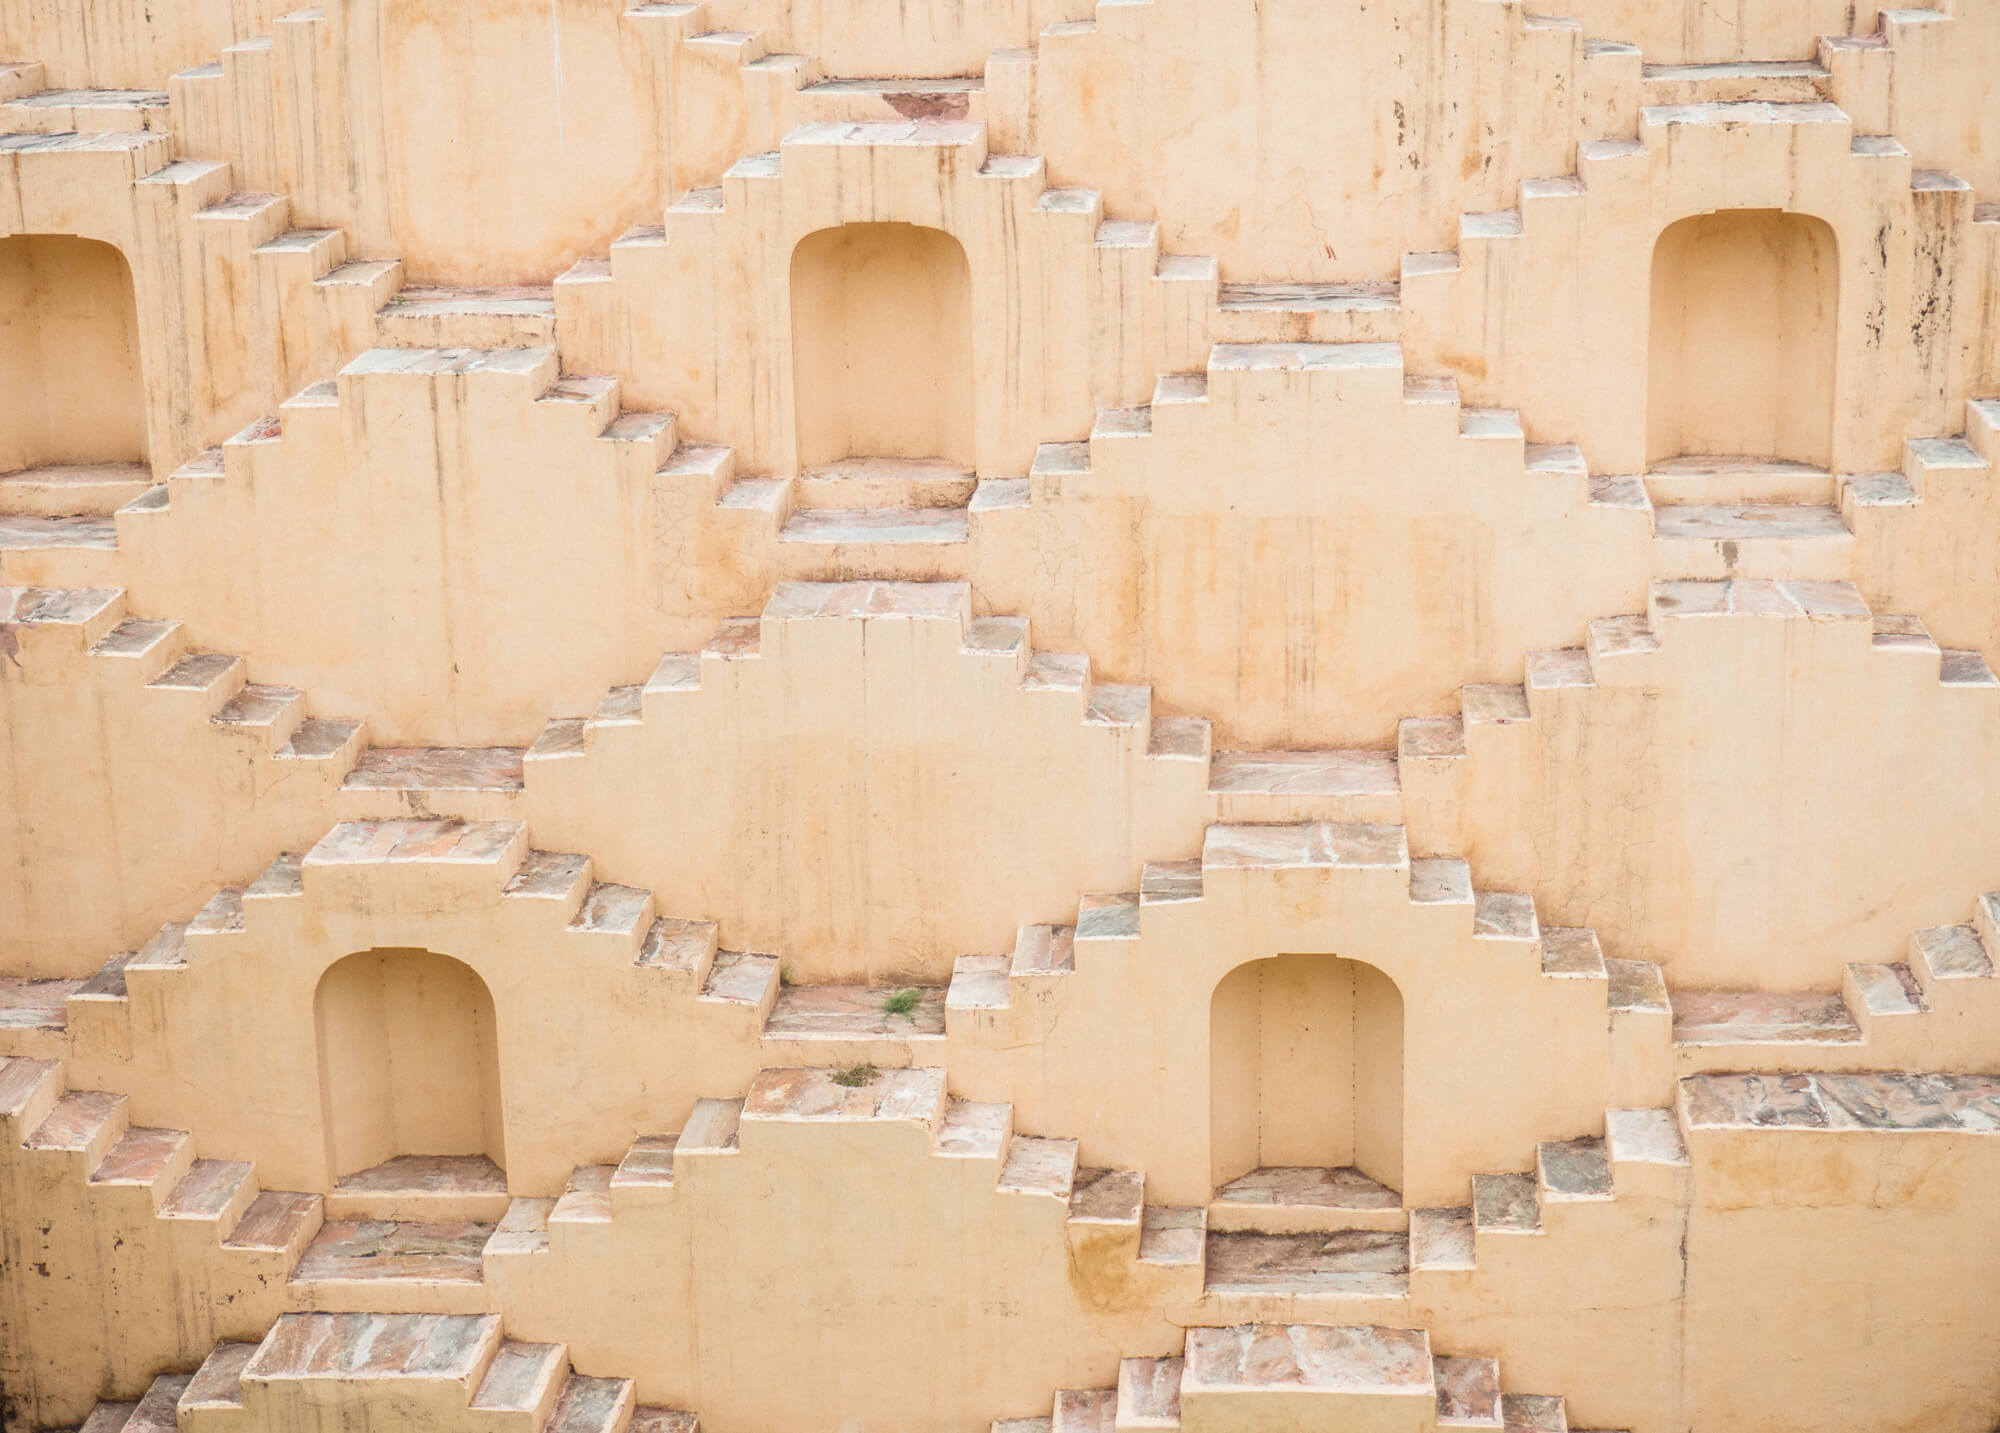 How to spend 2 days in Jaipur - Panna Meena ka Kund stepwell